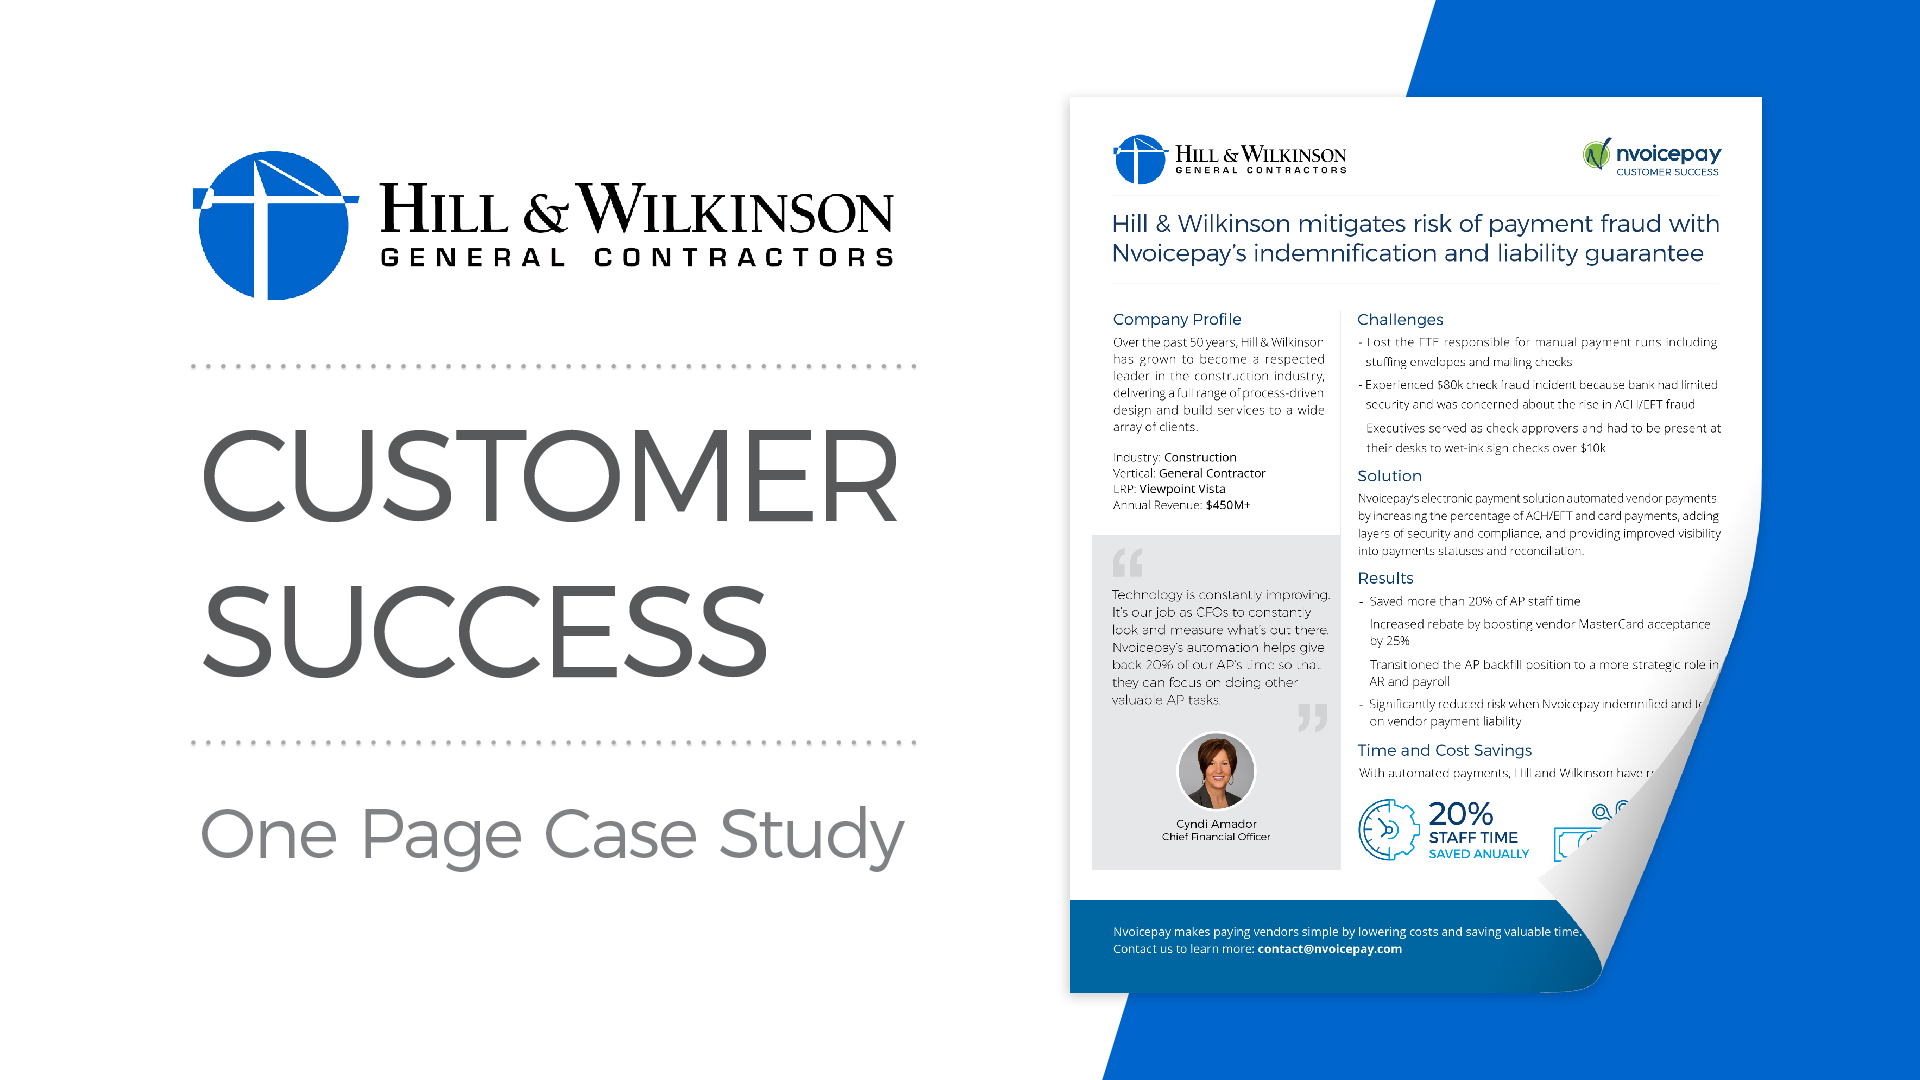 Customer Story: Hill & Wilkinson